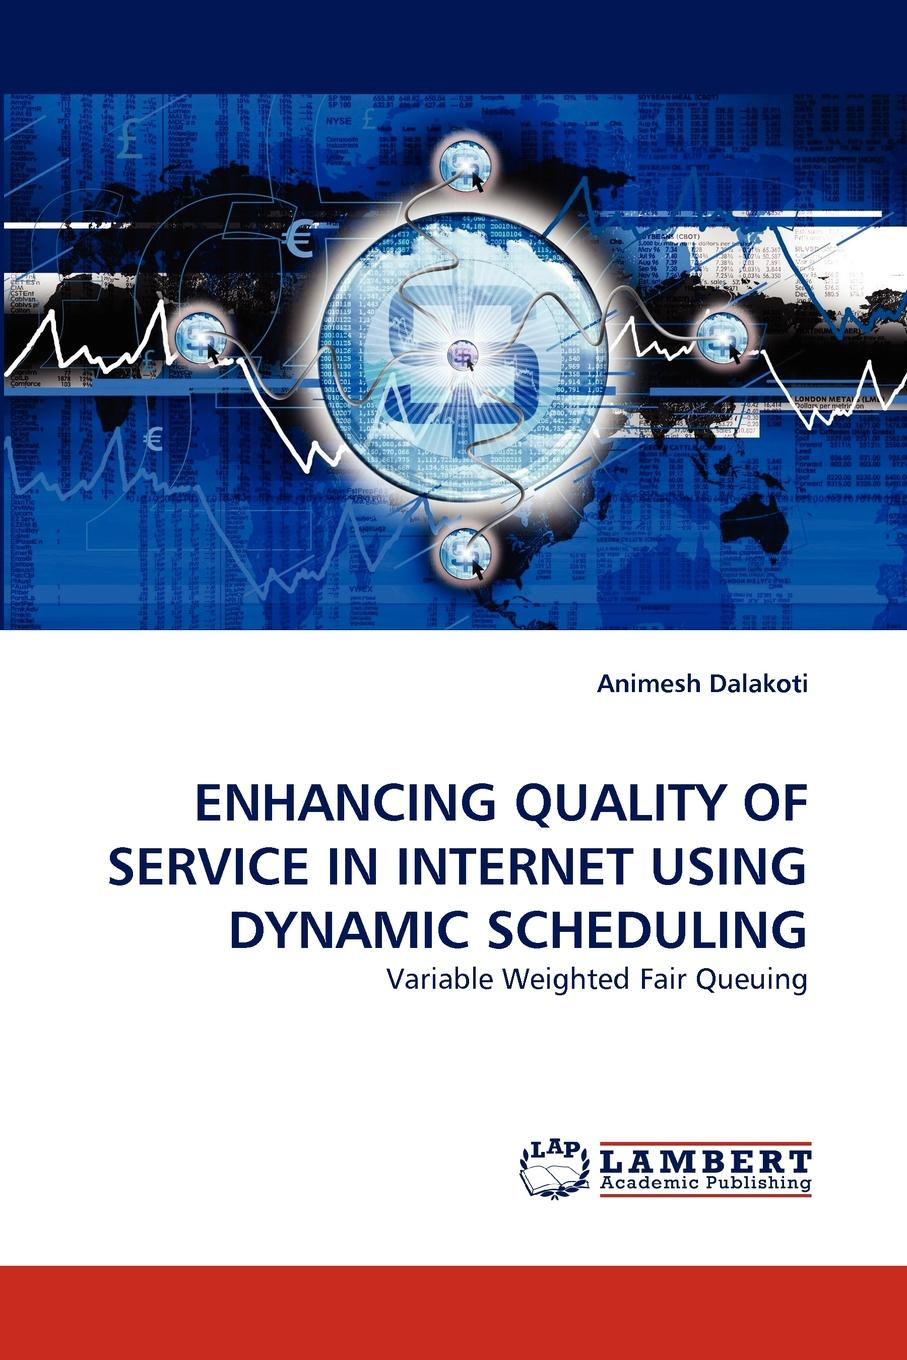 Animesh Dalakoti ENHANCING QUALITY OF SERVICE IN INTERNET USING DYNAMIC SCHEDULING